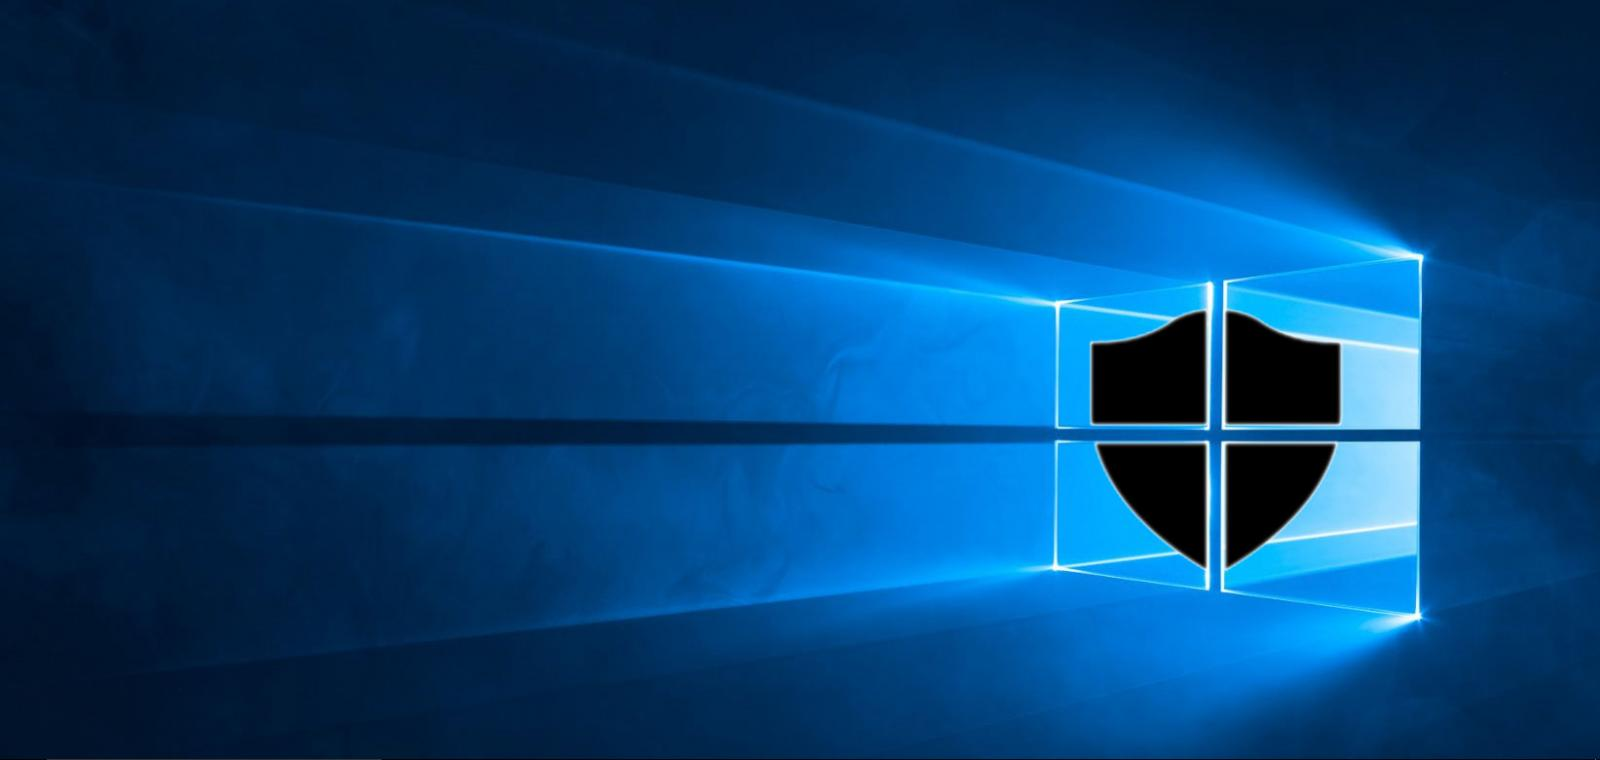 Microsoft Releases Standards for Highly Secure Windows 10 Devices